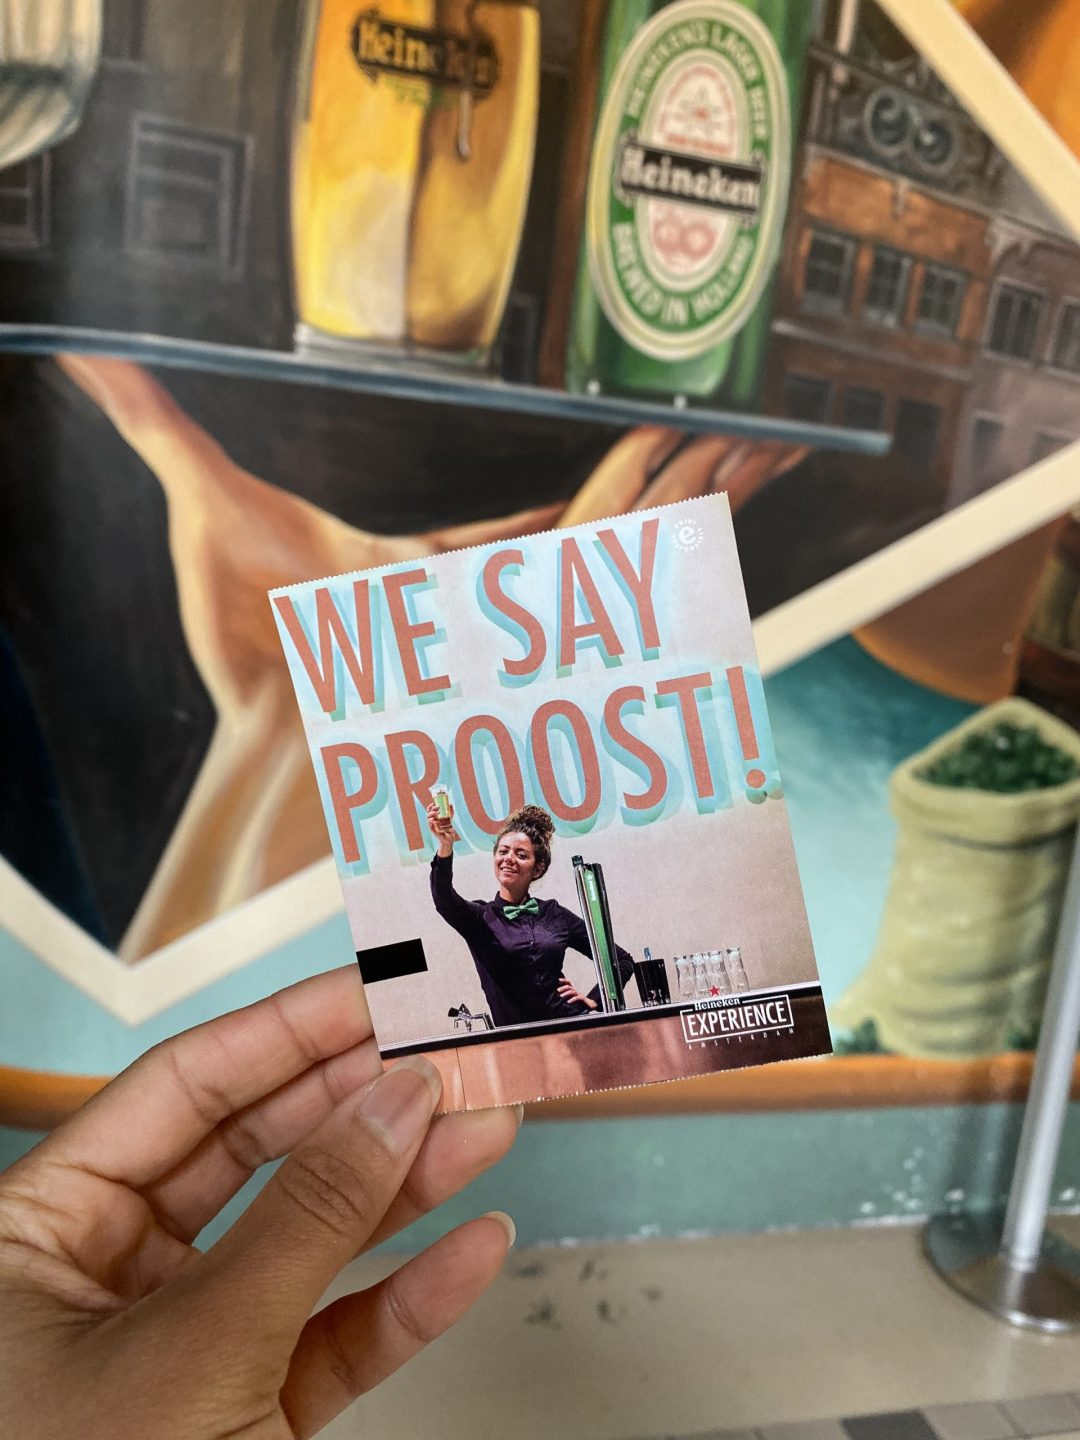 """Heineken Experience Amsterdam: ticket with text """"We Say Proost!"""""""